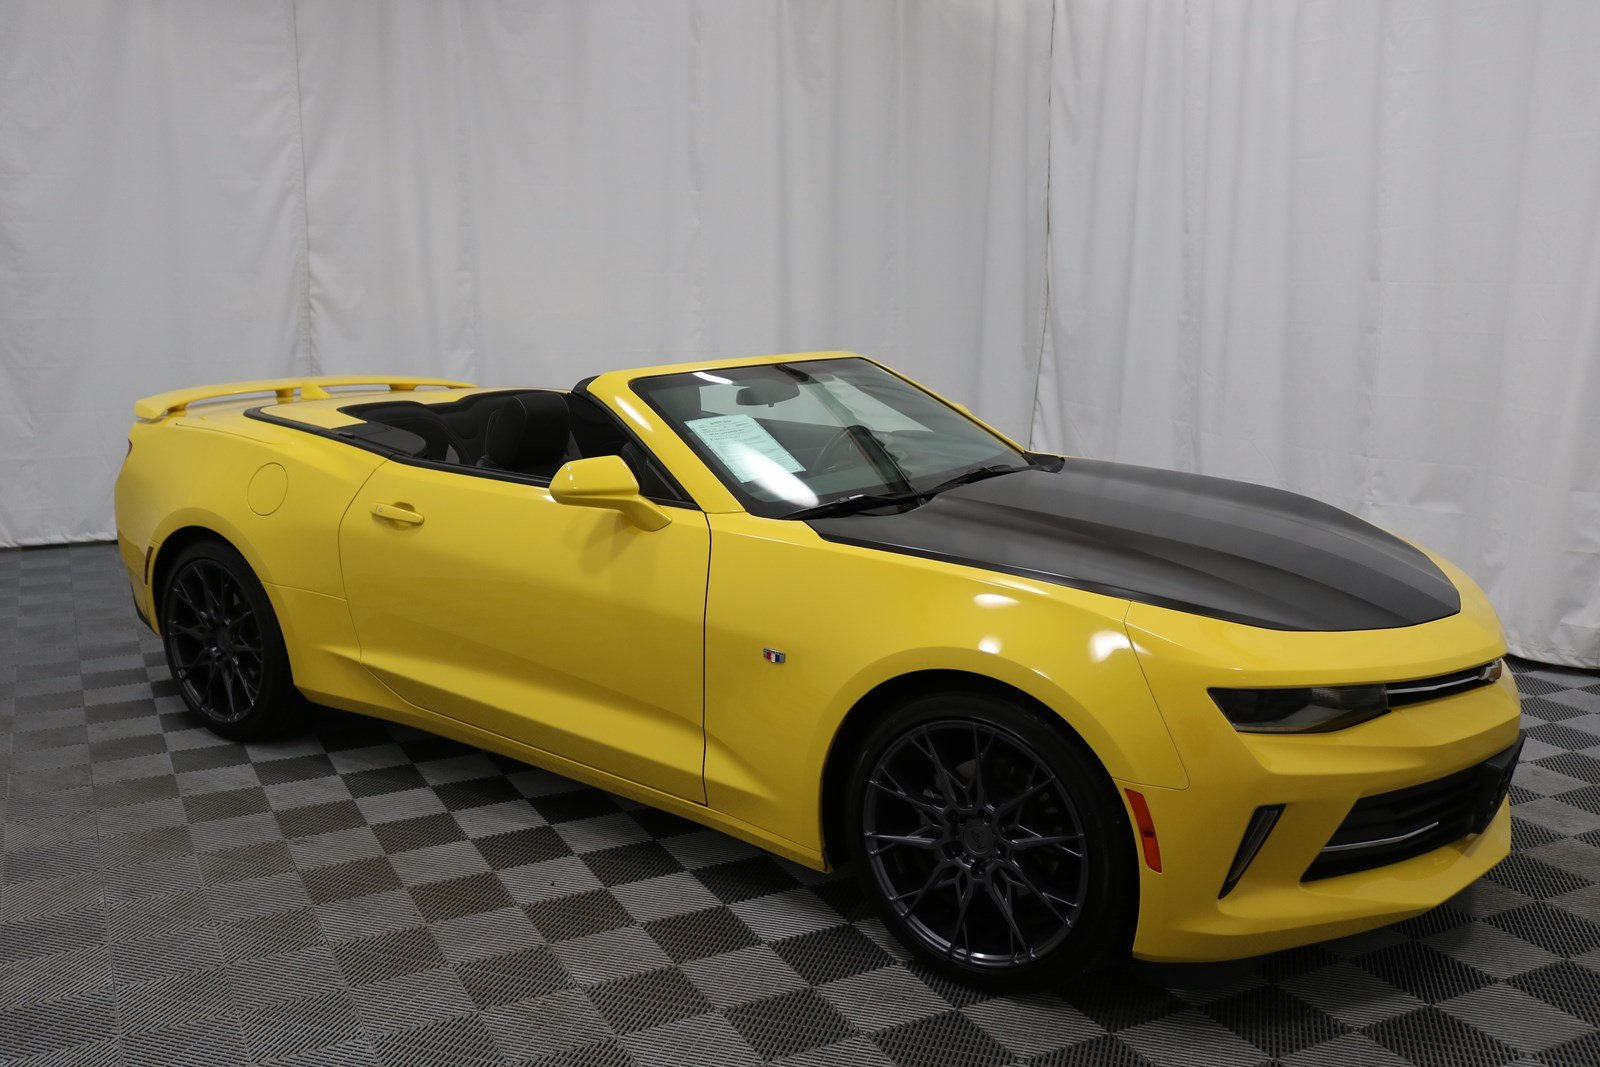 camaro chevrolet news quarters frankfort in three frankfurt convertible debuts front